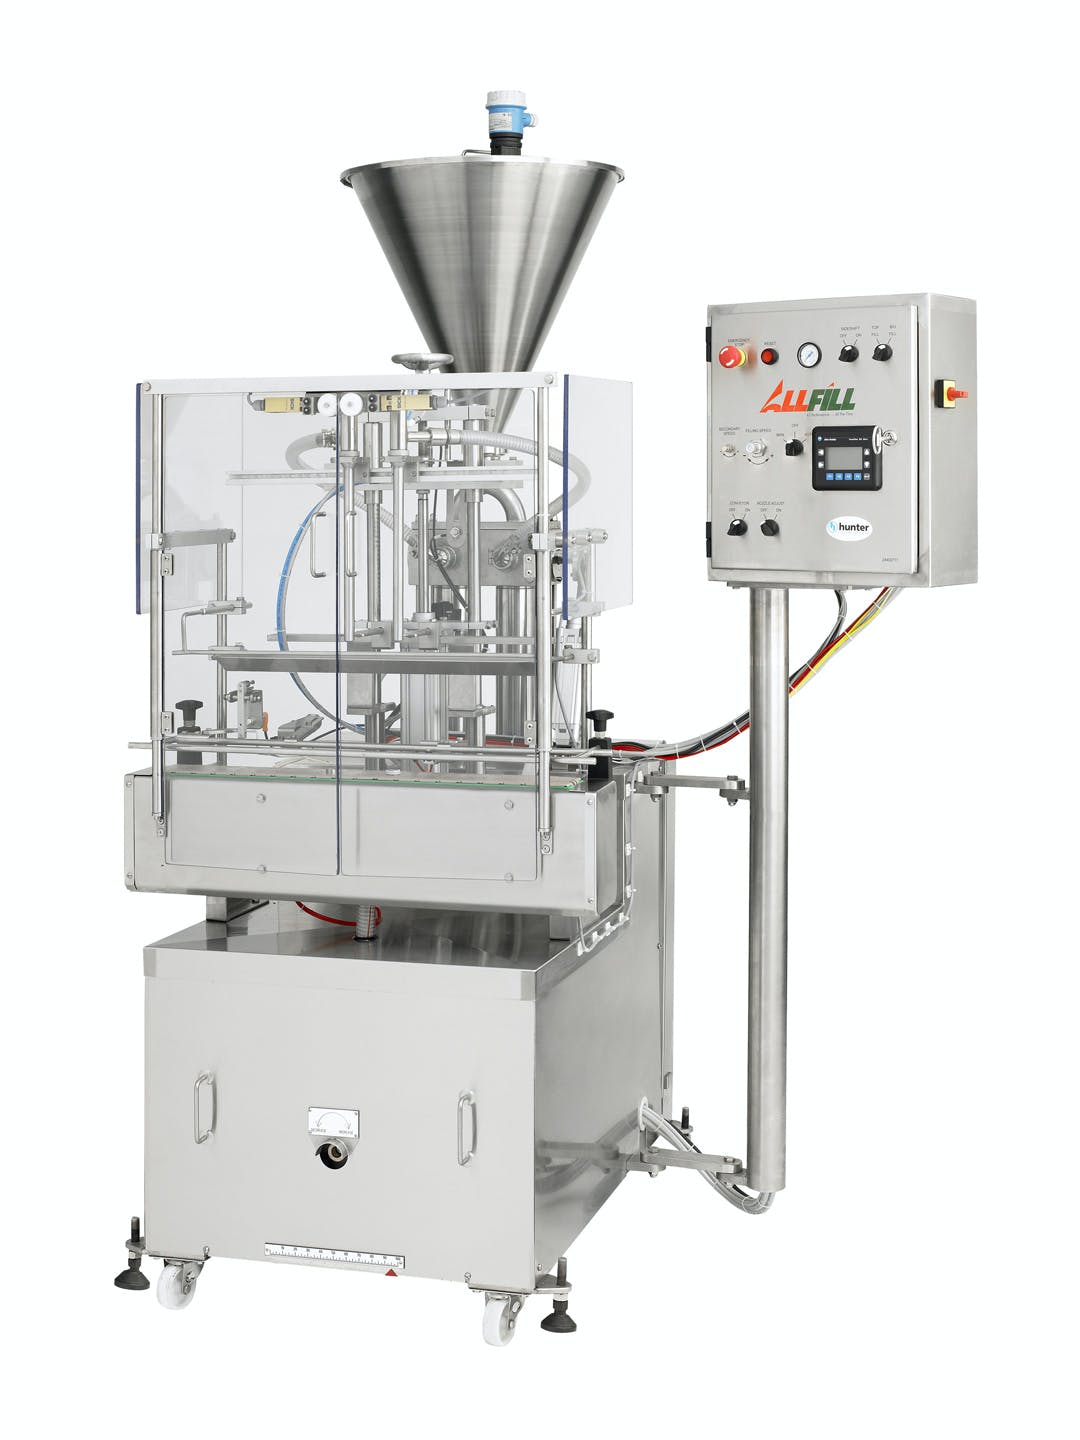 Piston Liquid Fillers Complete Liquid Packaging System sold by All-Fill